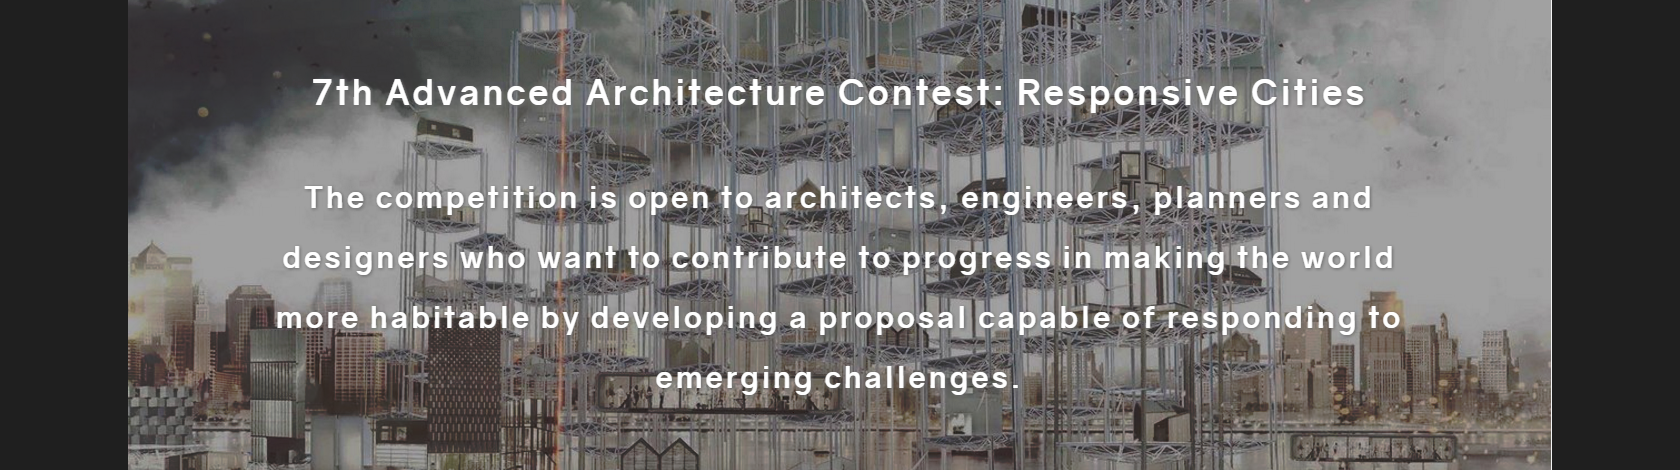 Advanced Architecture Contest